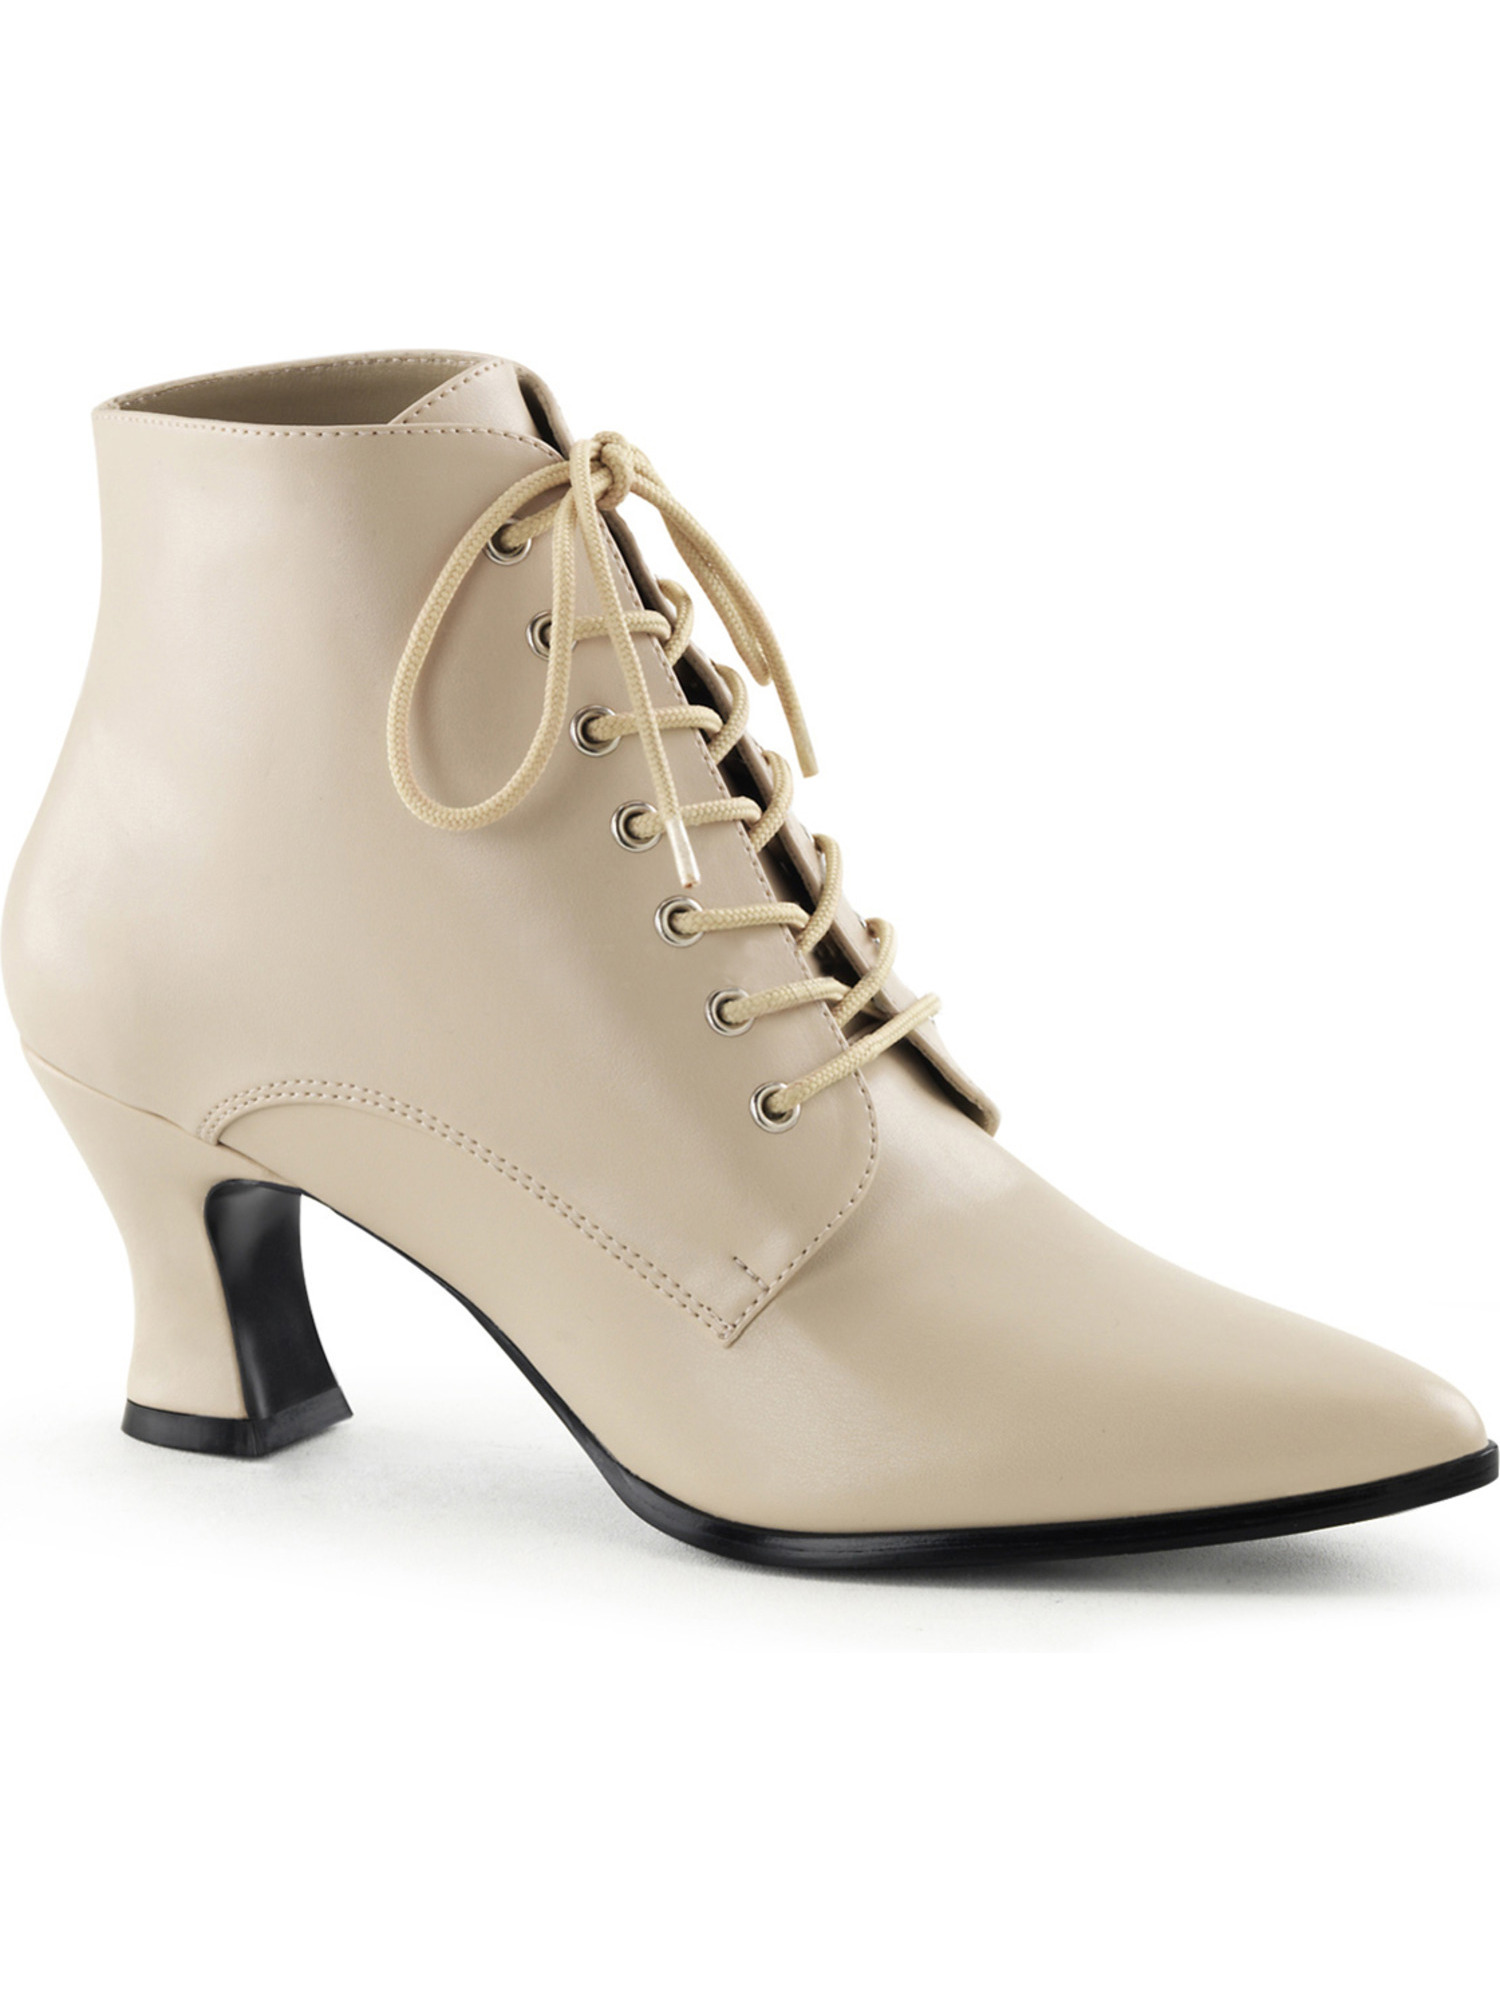 Womens Cream Lace Up Ankle Booties with 2 3/4 Inch Heels Costume Shoes